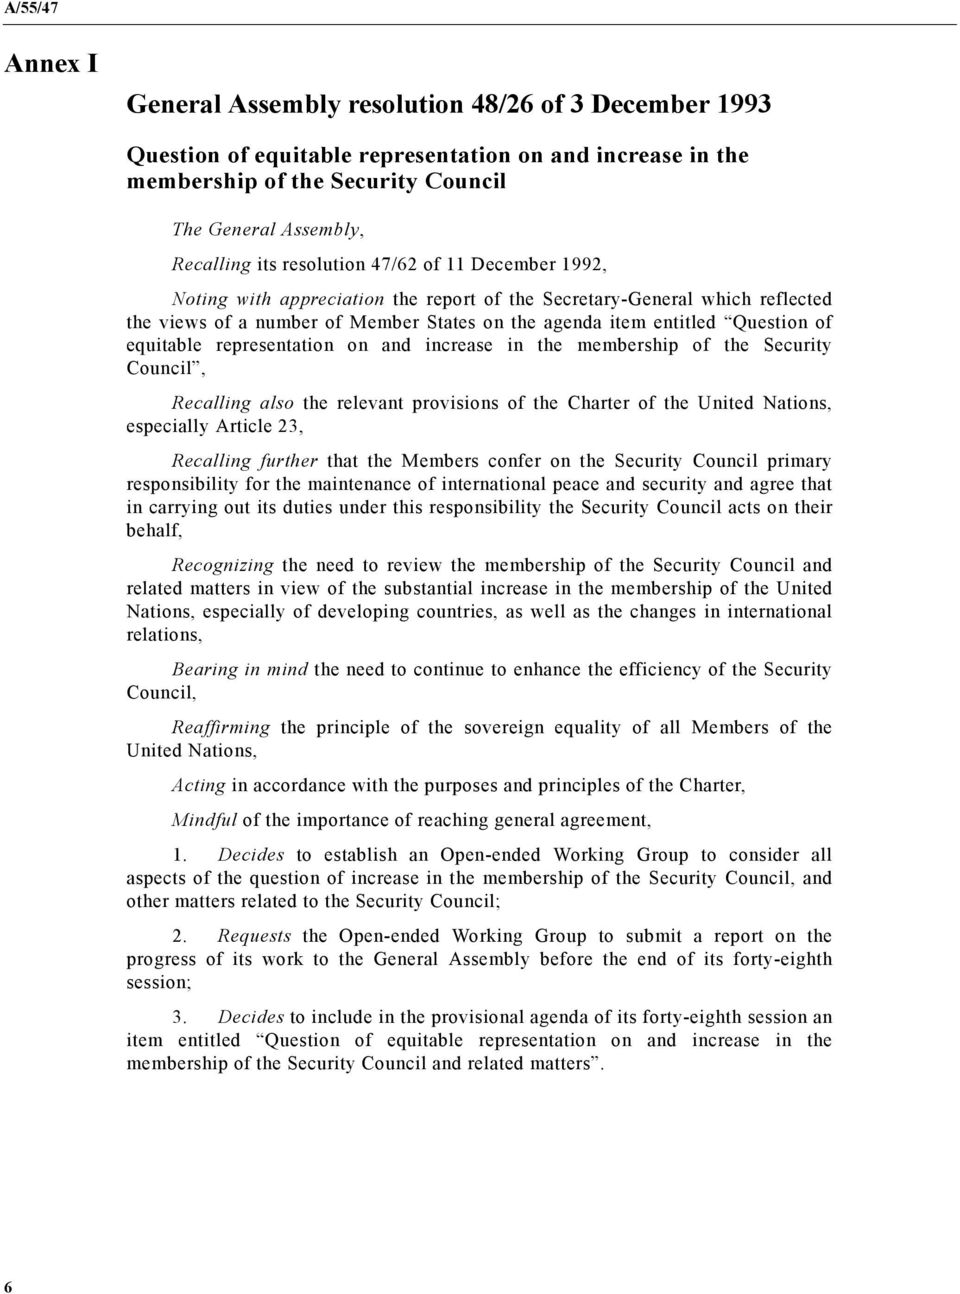 equitable representation on and increase in the membership of the Security Council, Recalling also the relevant provisions of the Charter of the United Nations, especially Article 23, Recalling